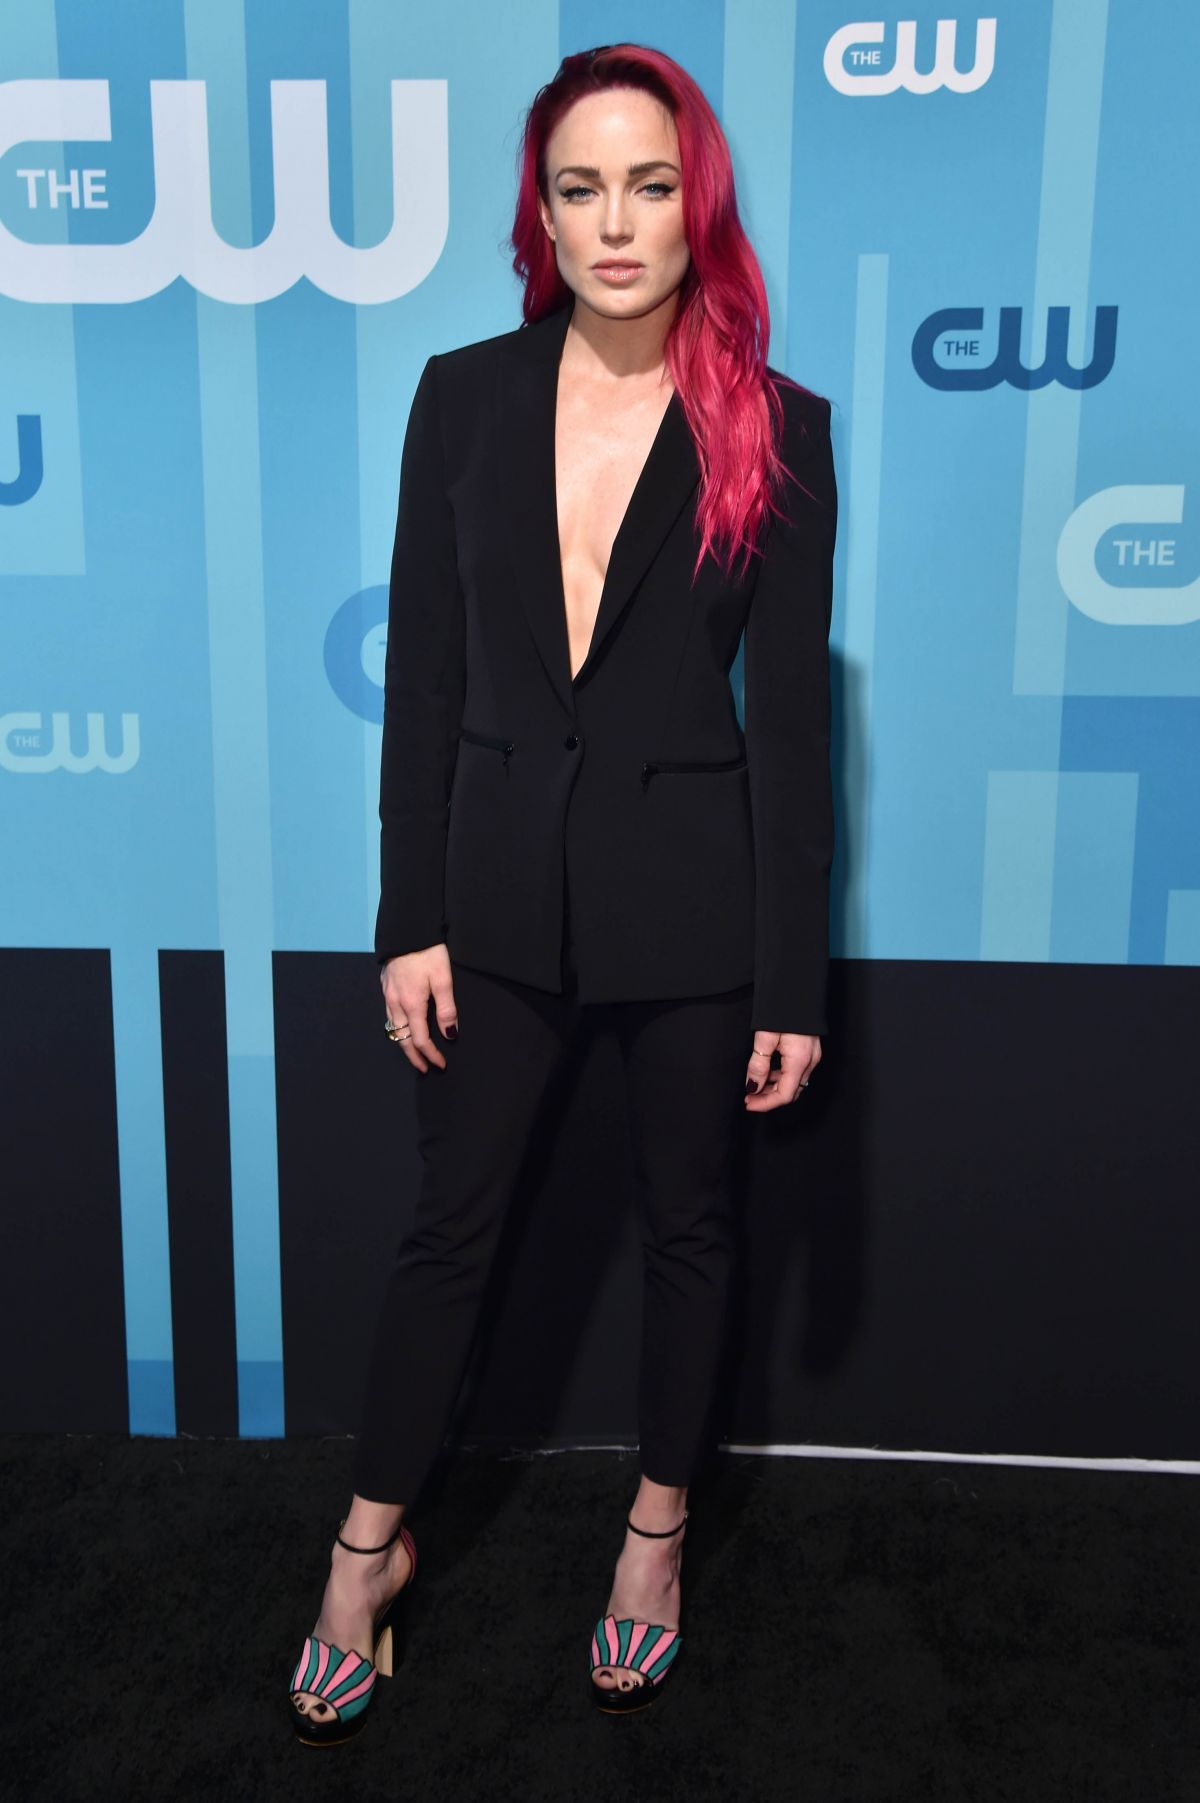 CAITY LOTZ at CW Network's Upfront in New York 05/18/2017